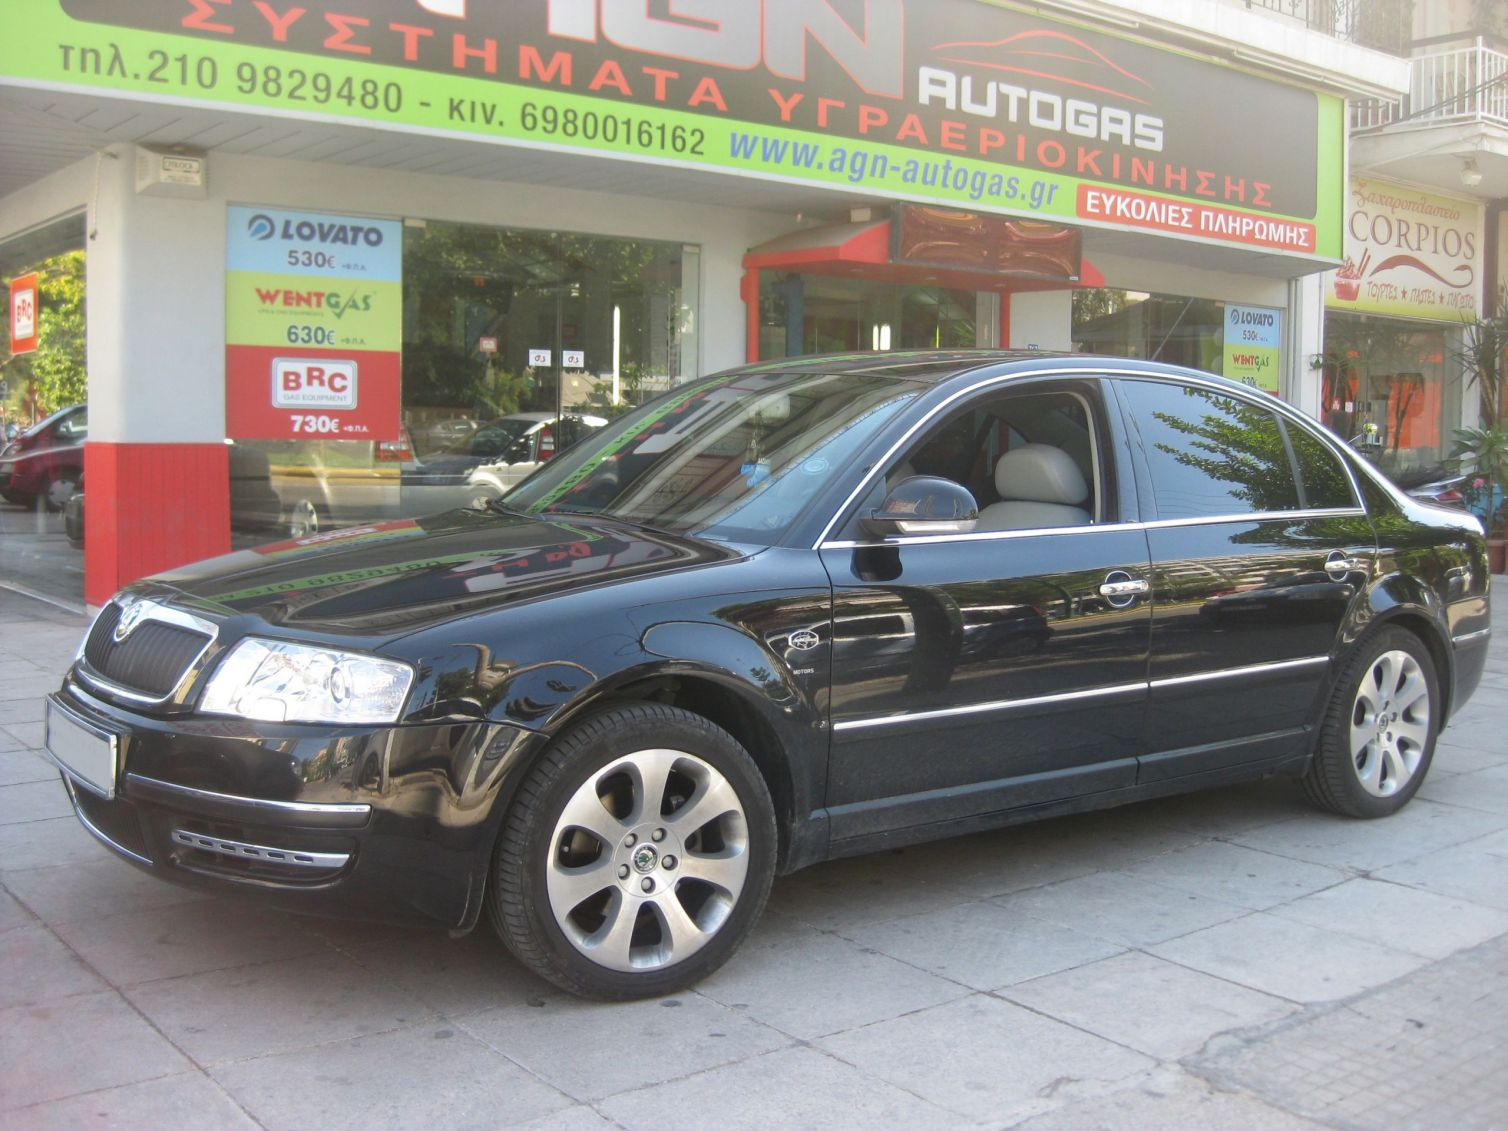 SKODA OCTAVIA SUPERB 1800cc '07 TURBO ME BRC 47lt